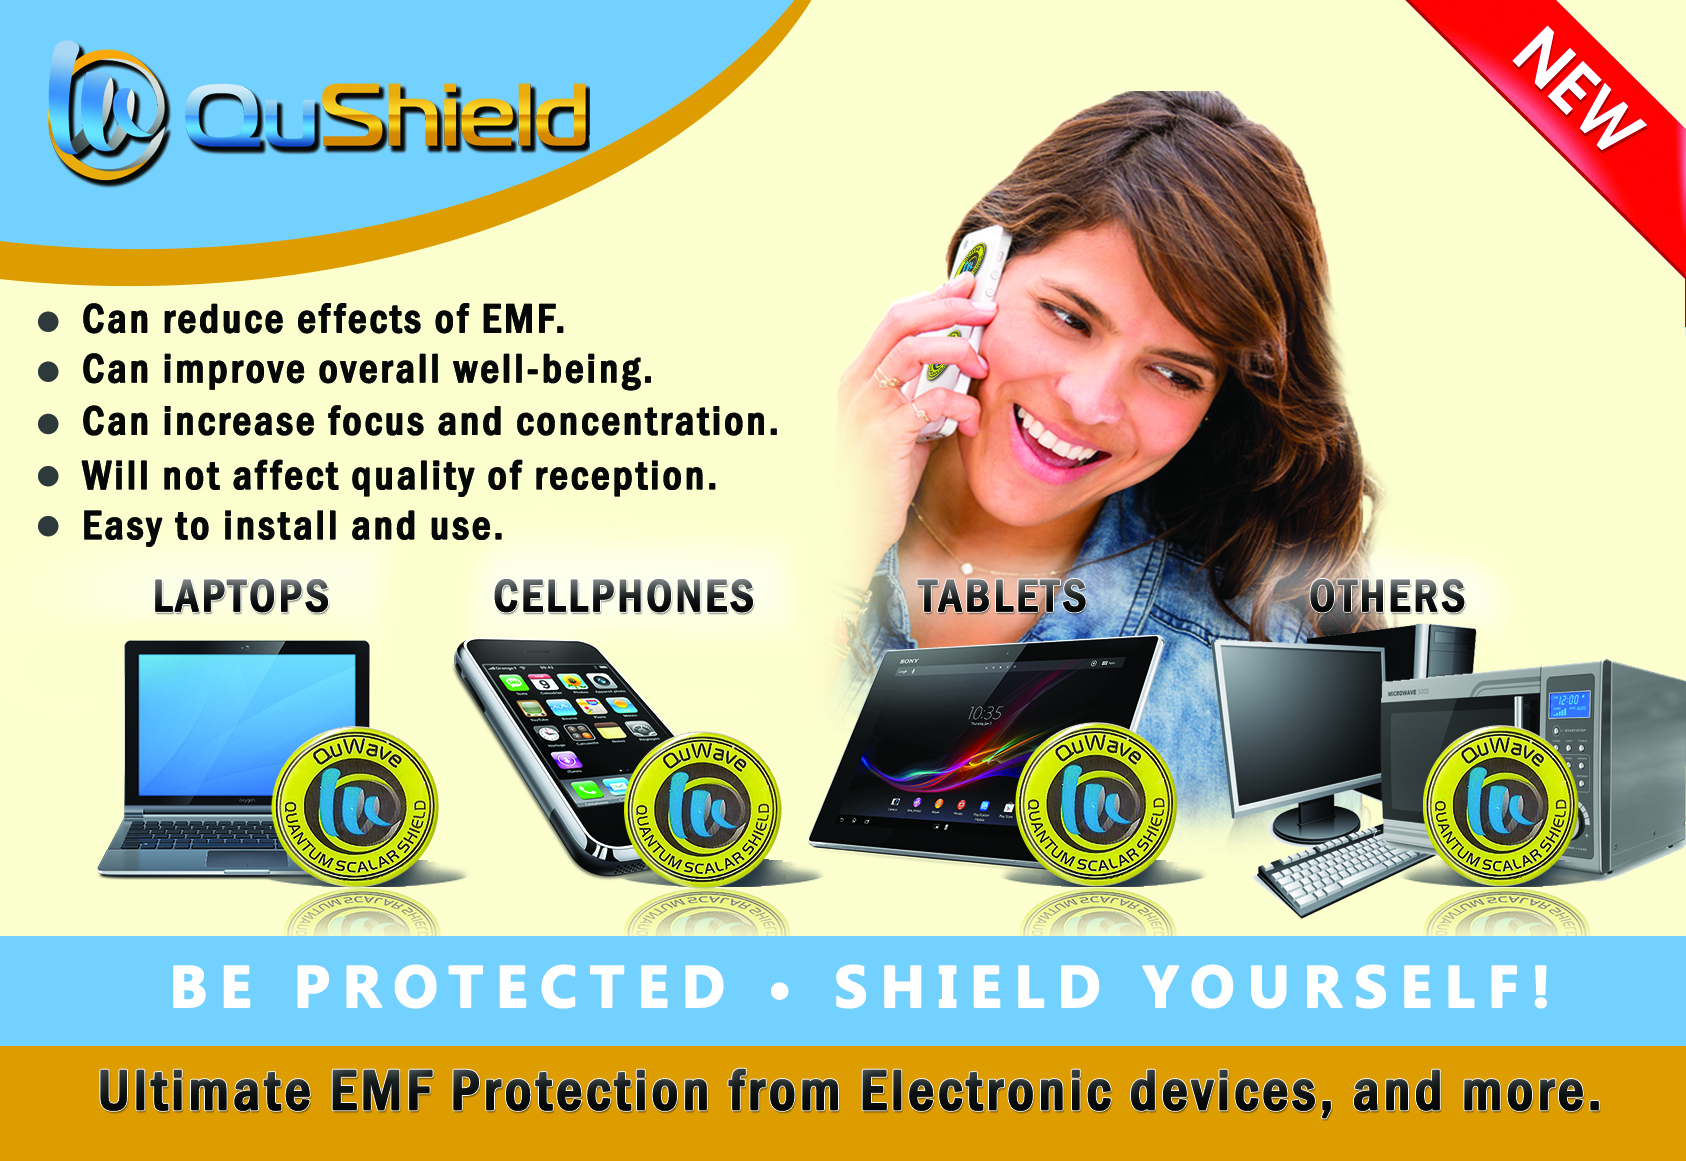 QuShield EMF protection sticker postcard